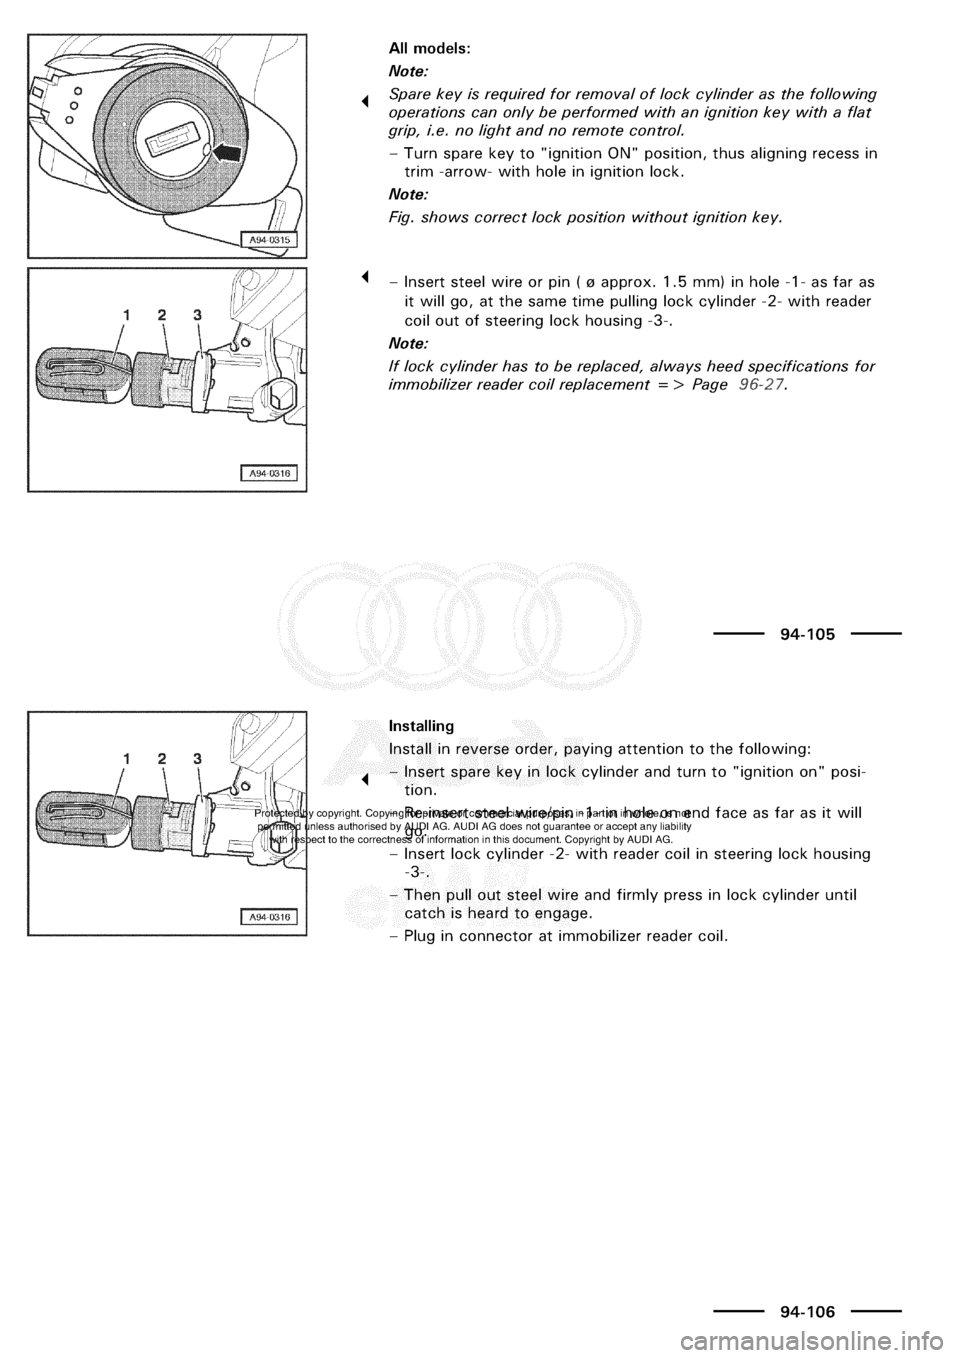 Audi a3 2003 8l 1g electrical system workshop manual cheapraybanclubmaster Image collections